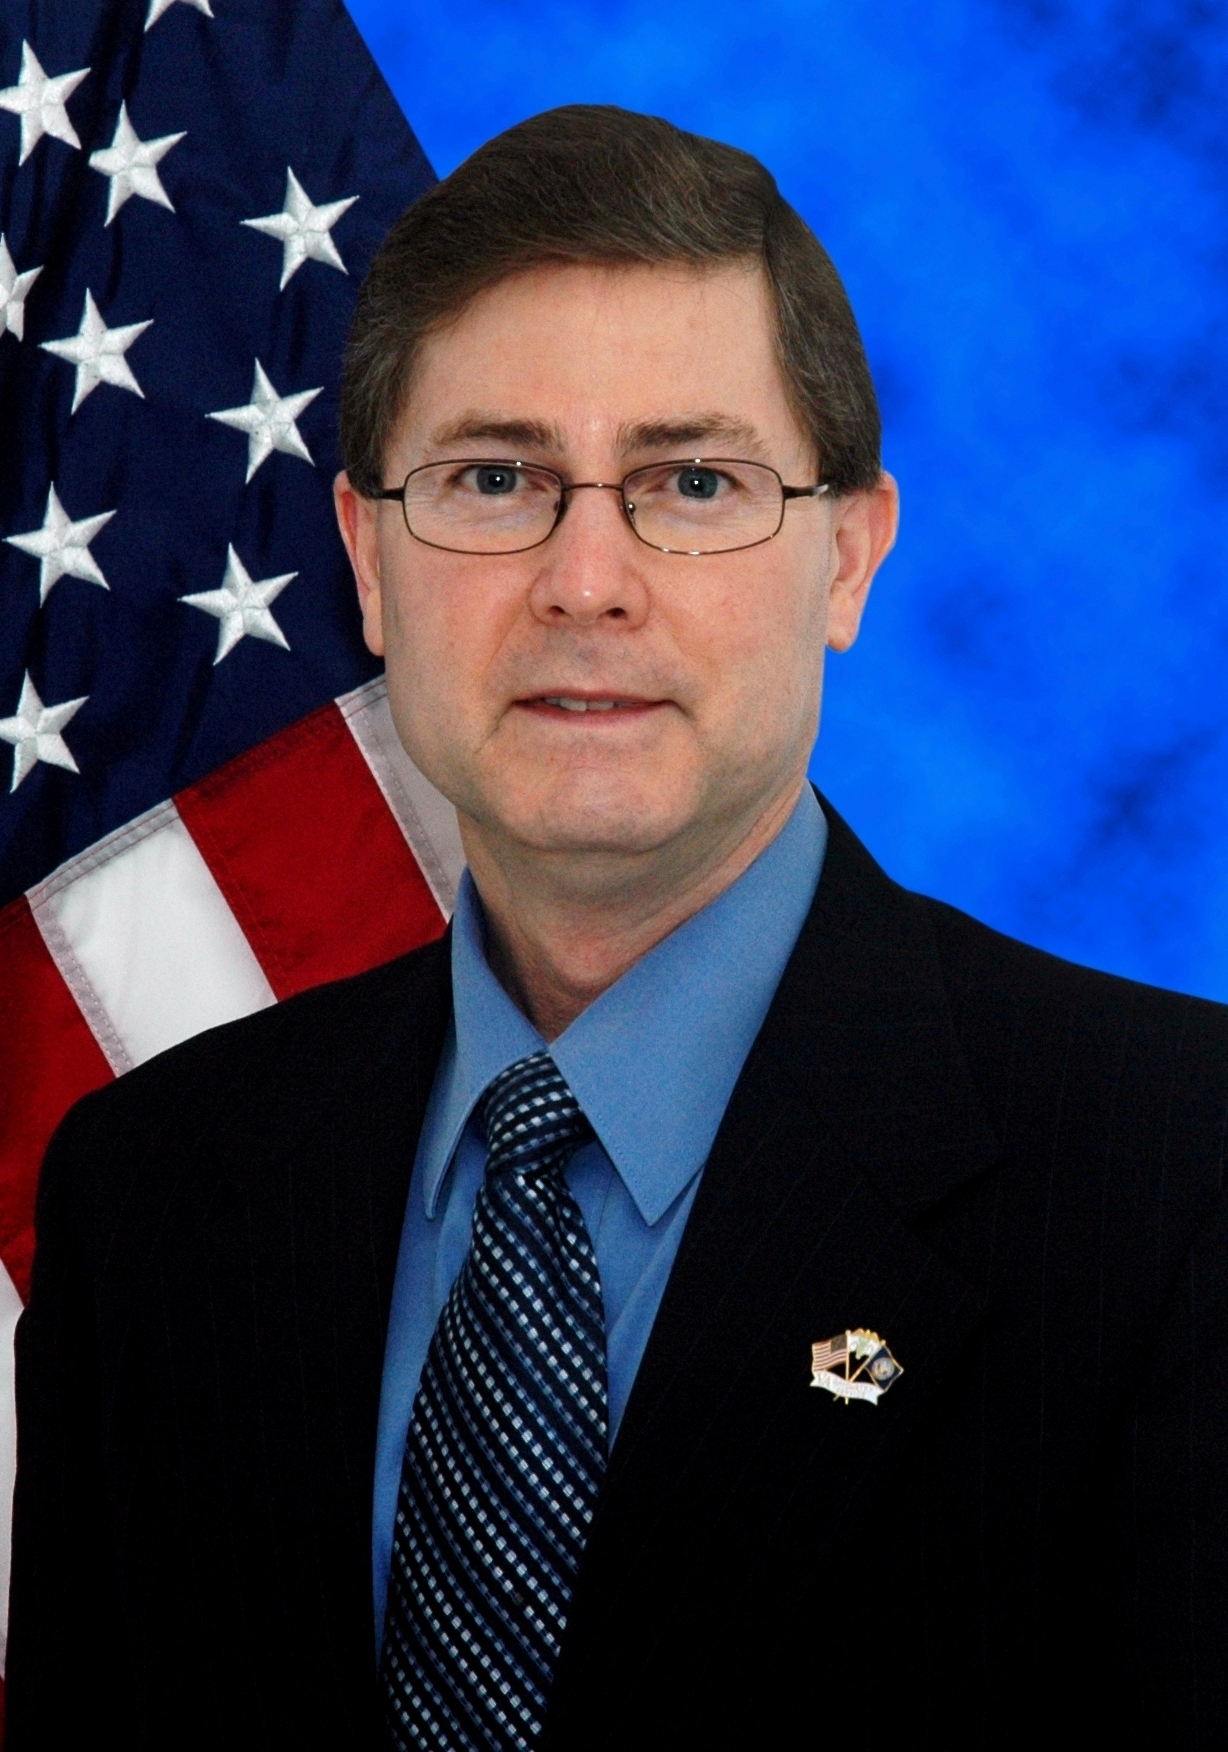 Photograph of Dr. John Townsend, Director of VA Optometry Service